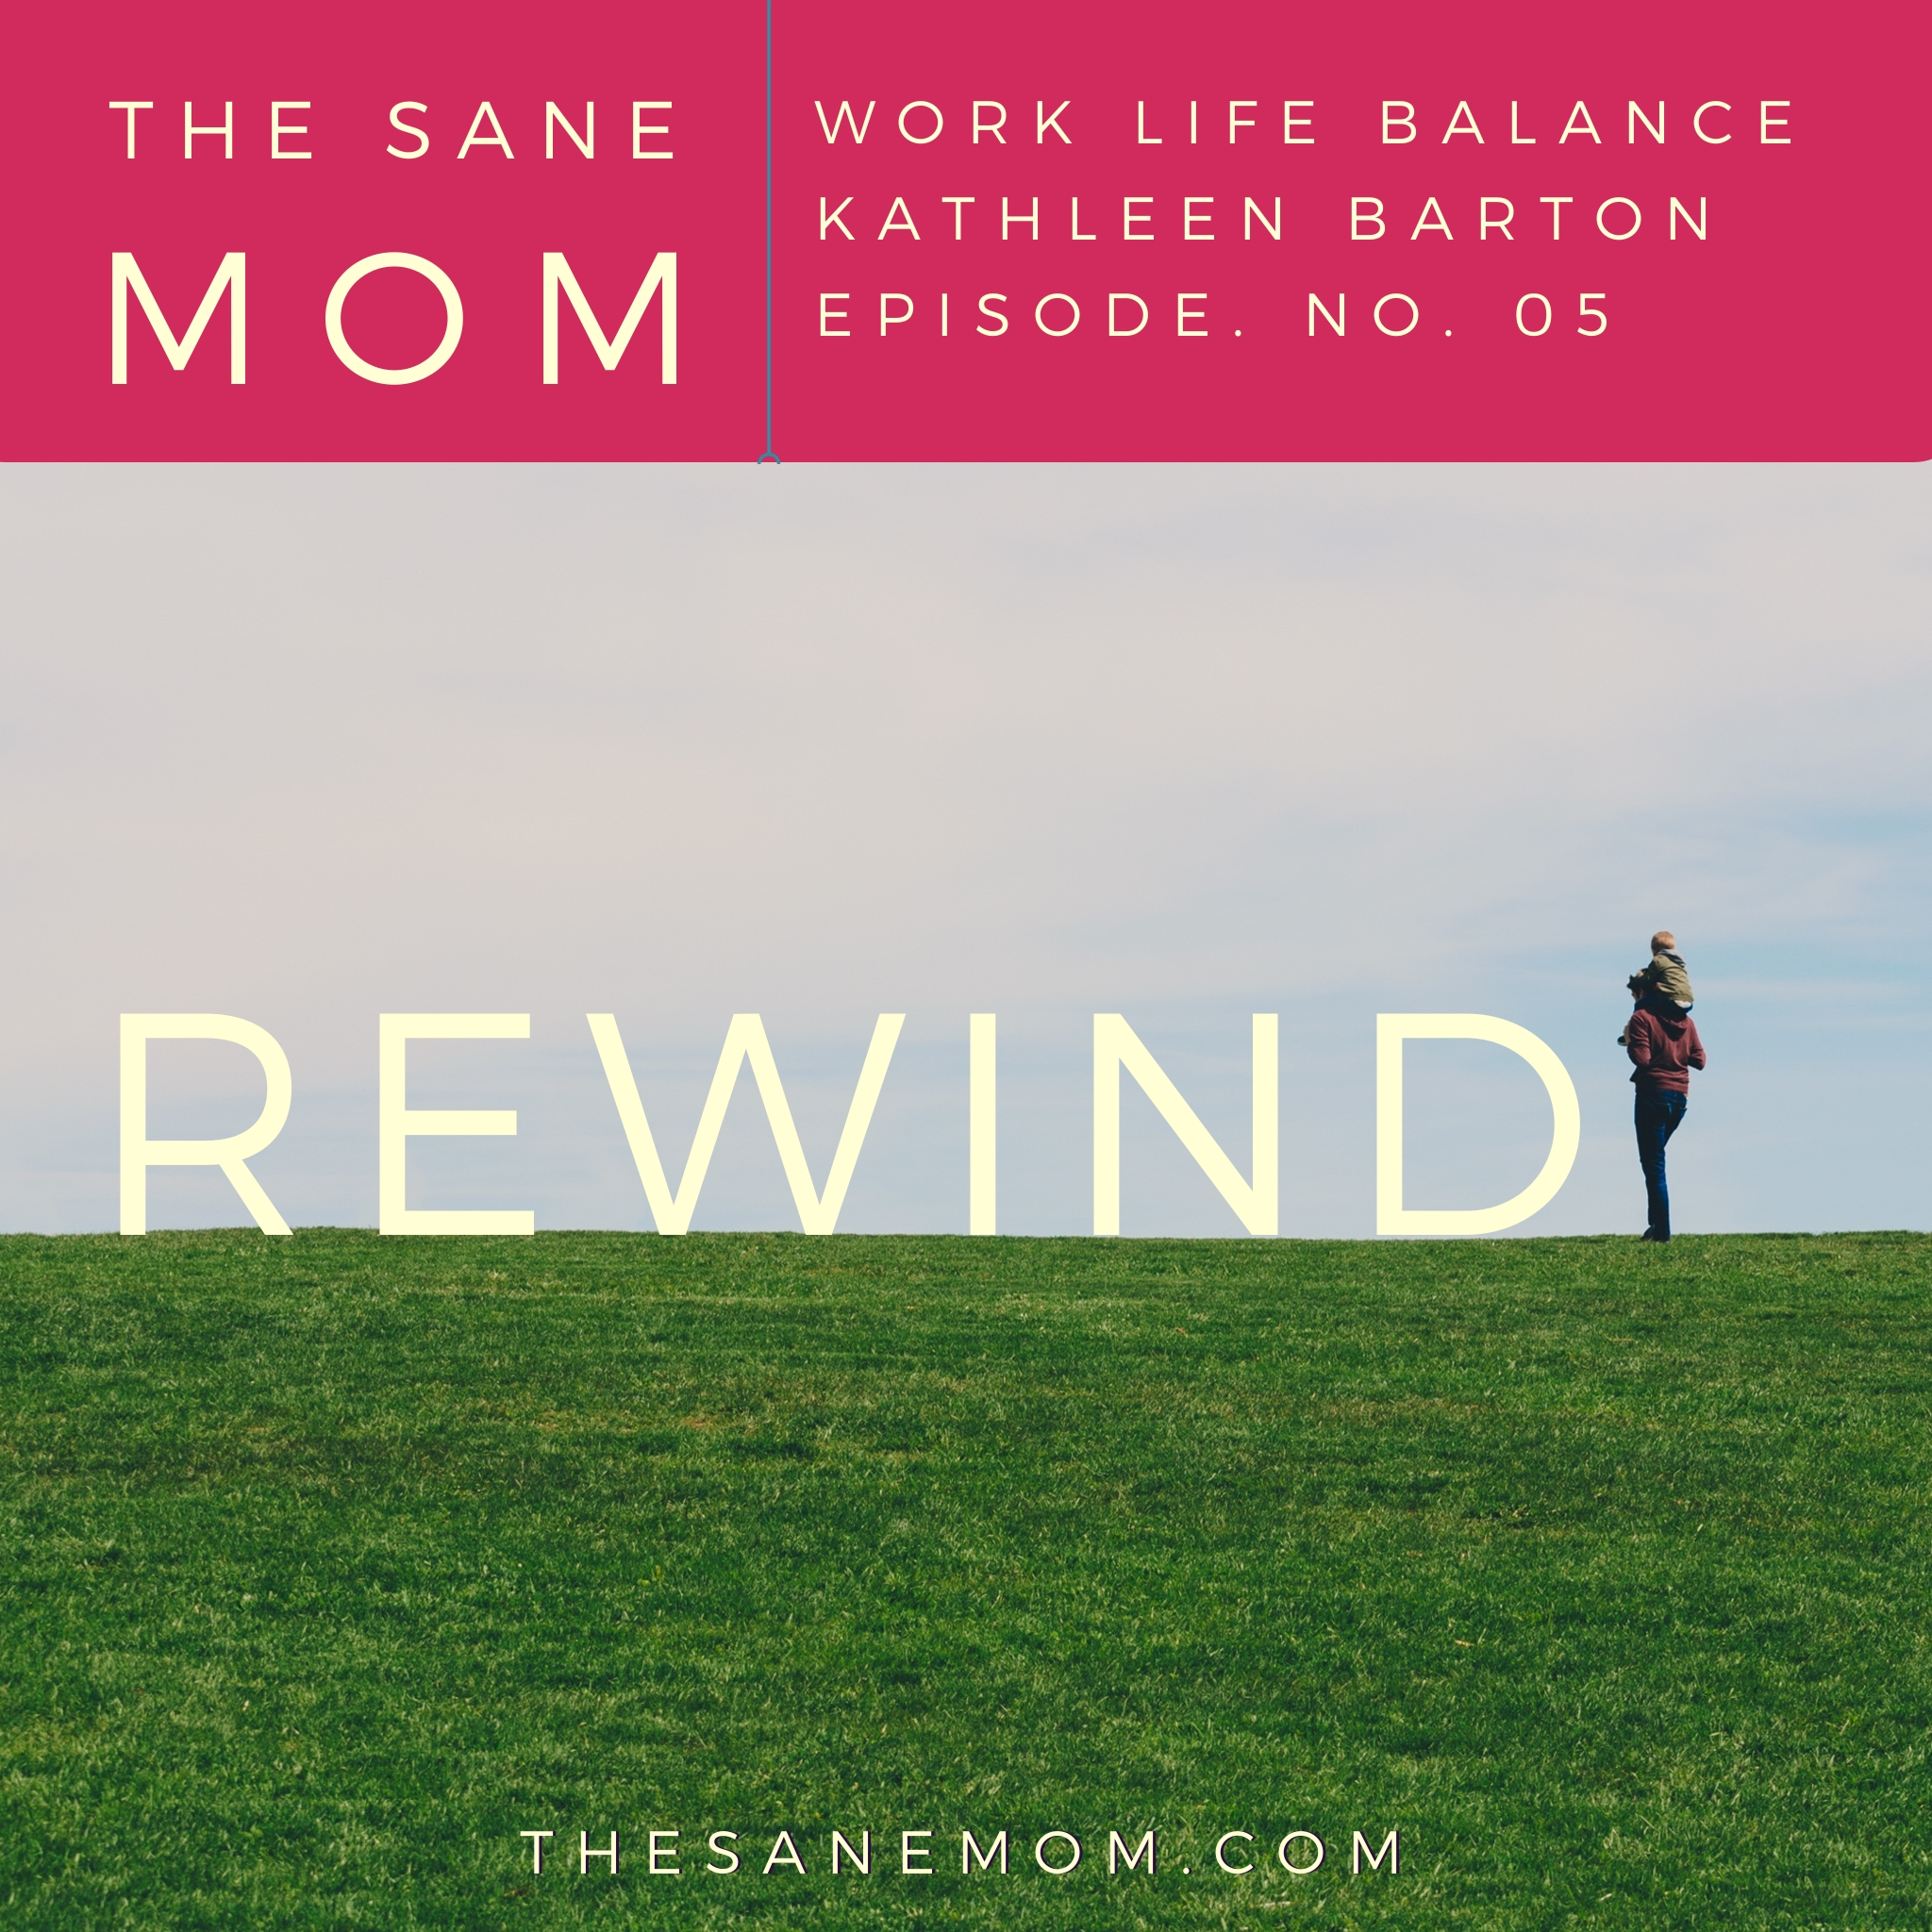 REWIND The Sane Mom Rewind episode 5